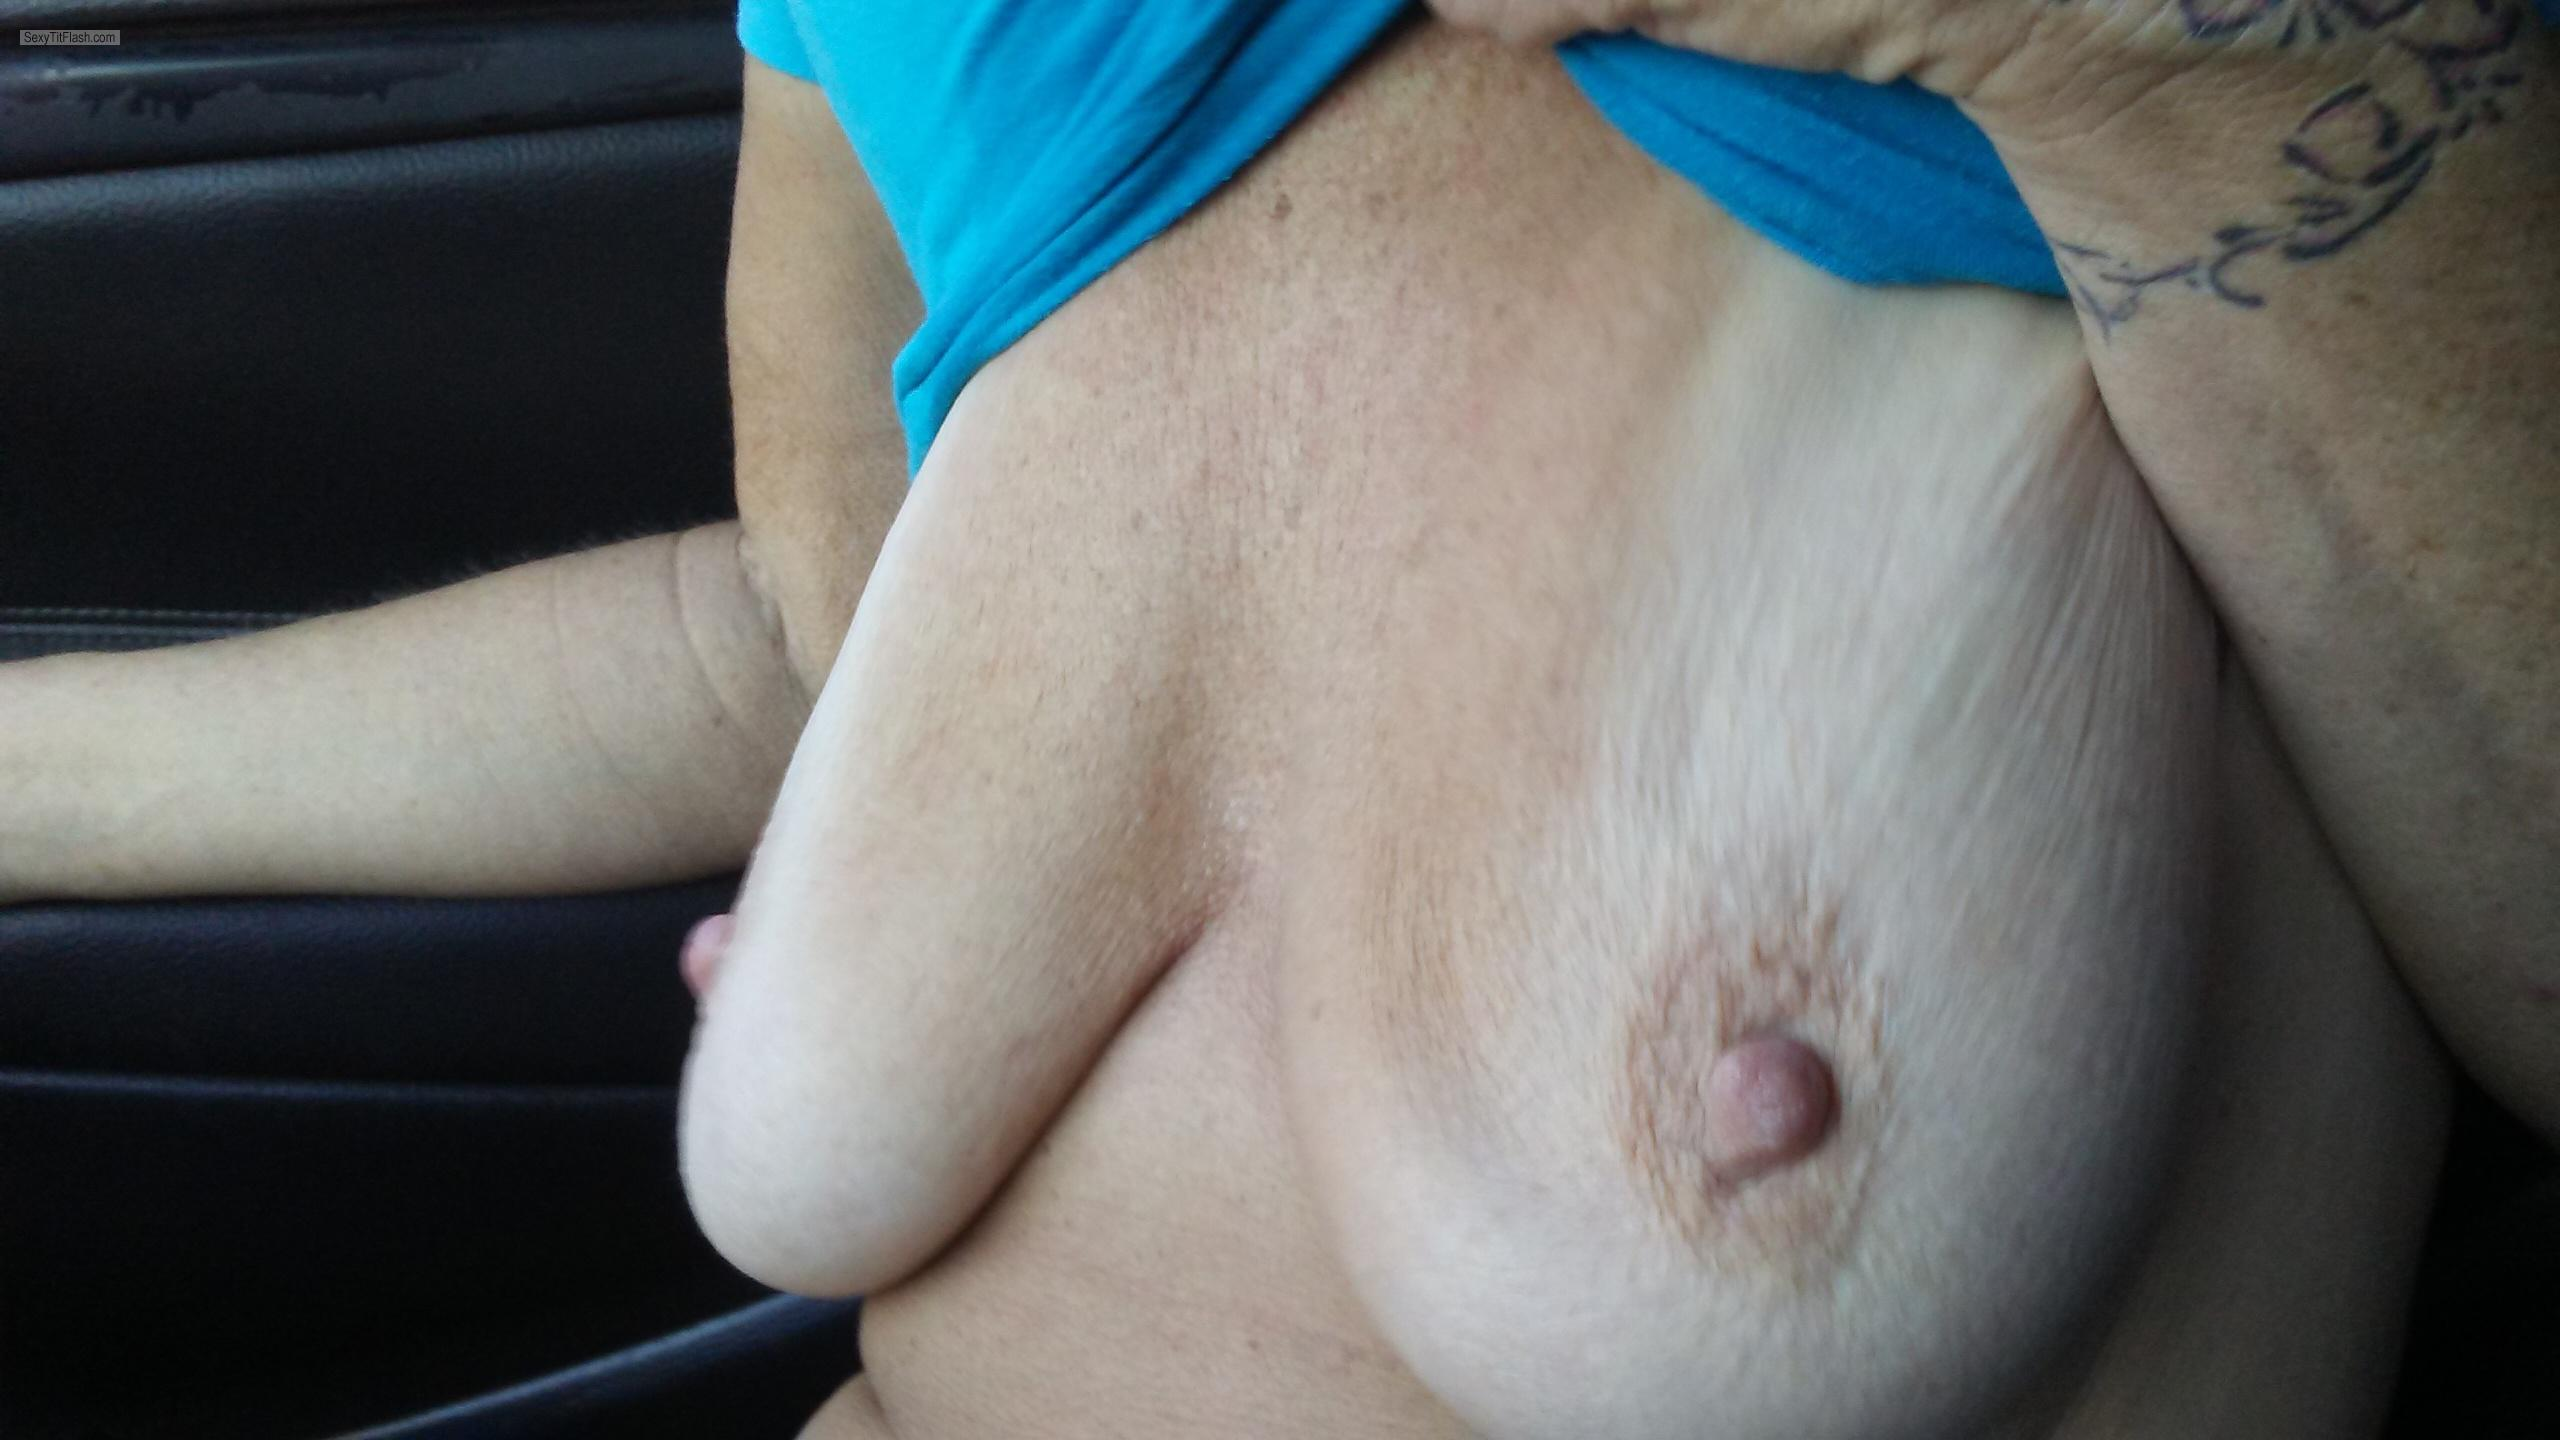 Tit Flash: My Friend's Big Tits - Kay from United States